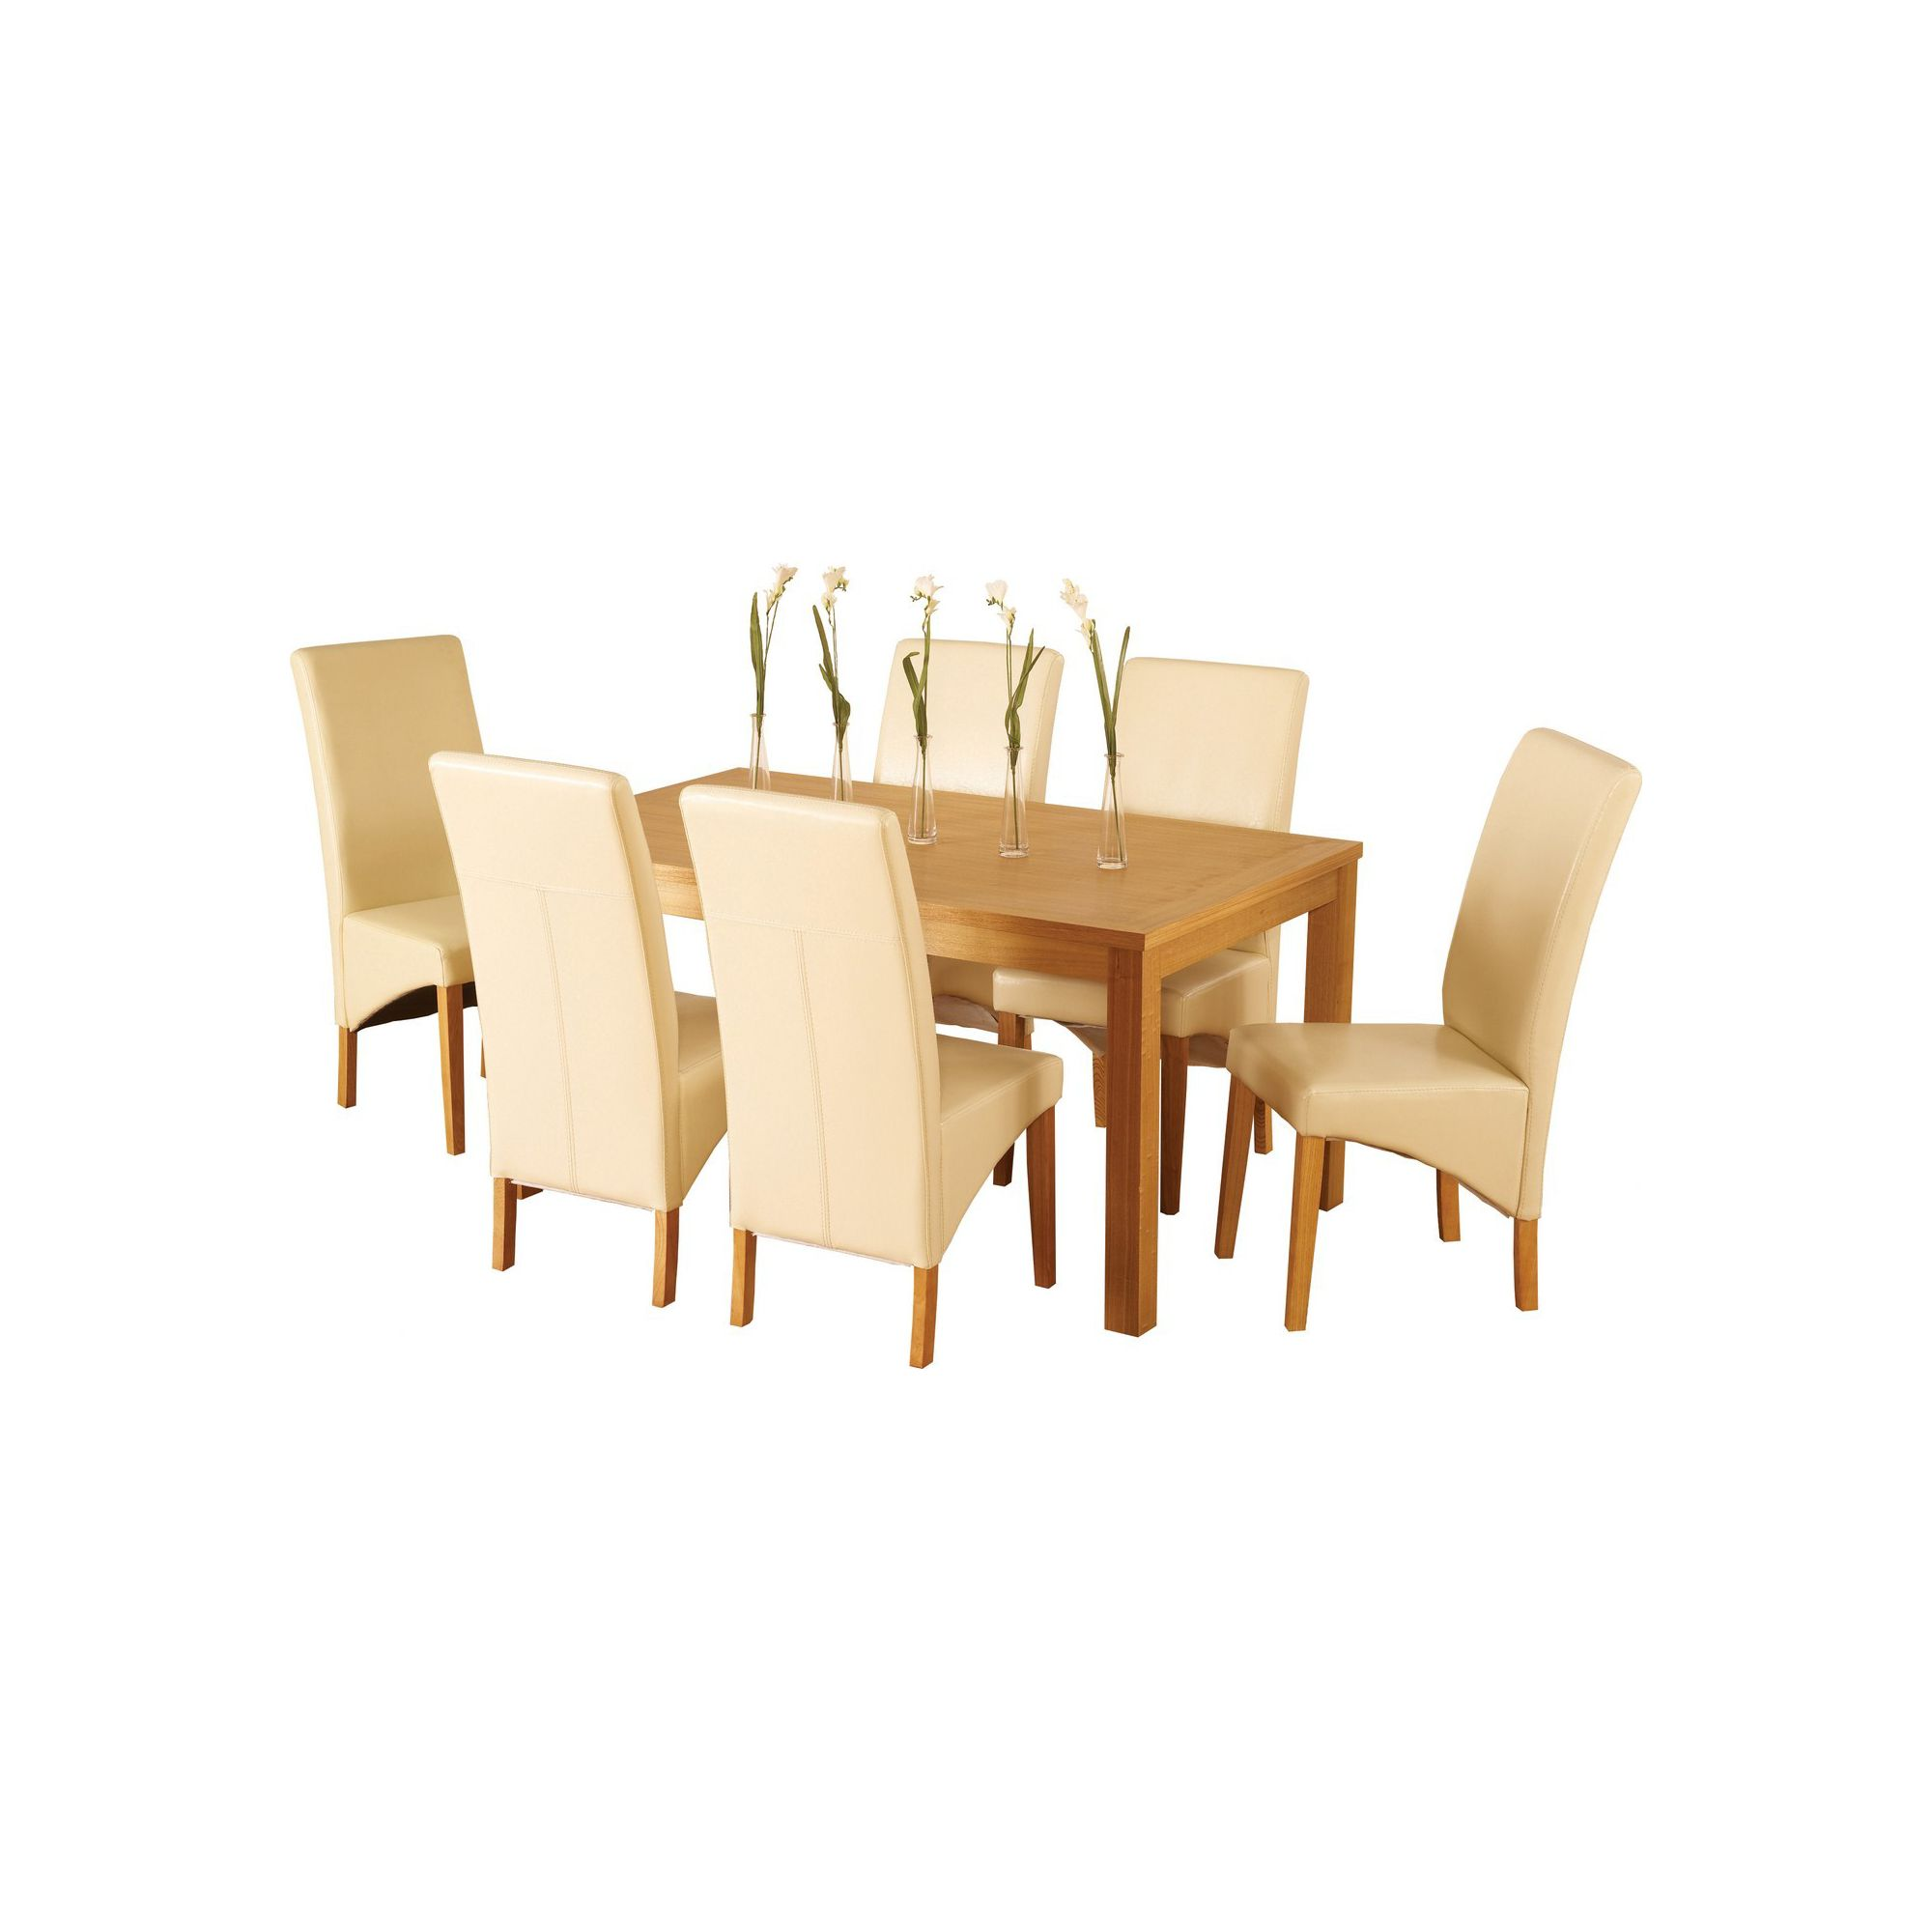 Home Essence Lawrence 7 Piece Dining Set with Cream Chairs at Tesco Direct